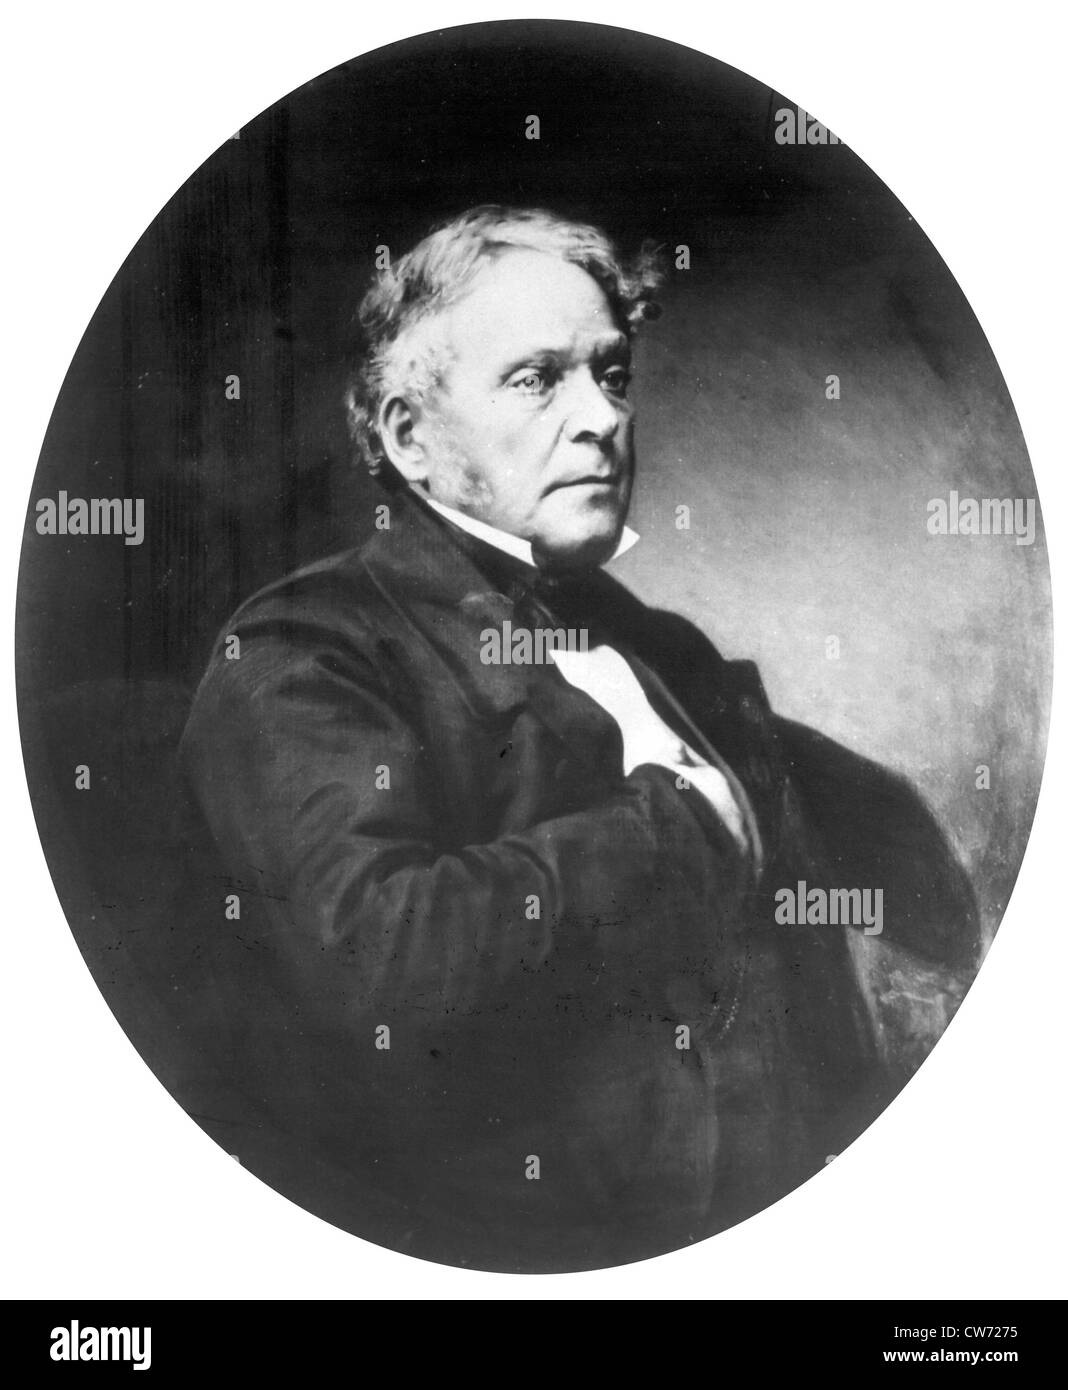 Henri-Joseph Gisquet (1792-1866), prefect of police in the reign of Louis-Philippe. - Stock Image